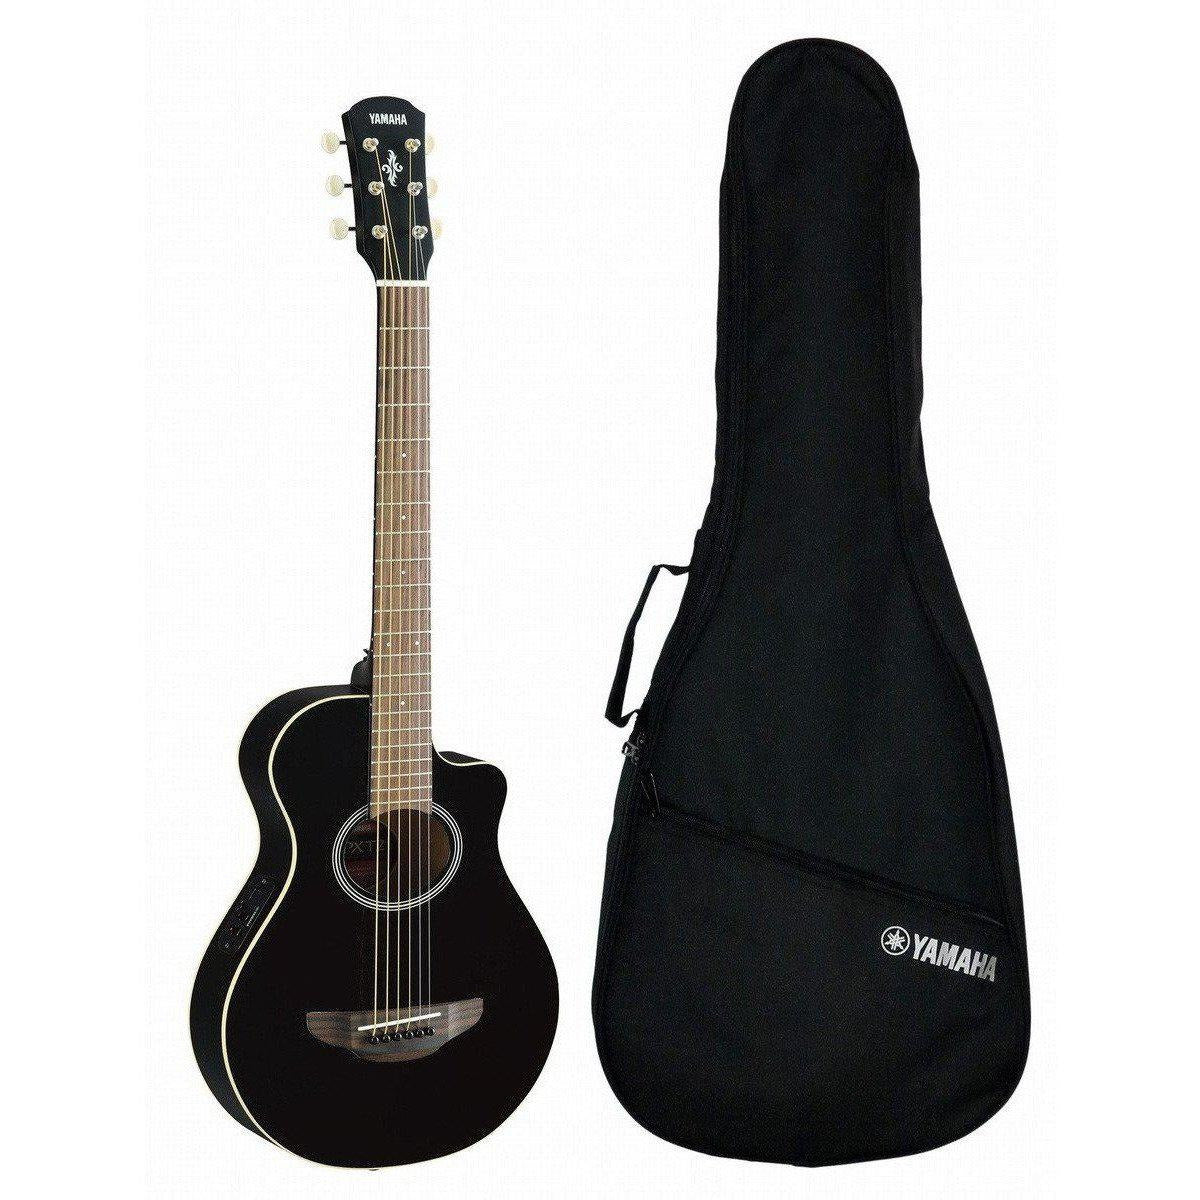 Yamaha Apxt2 34 Size Acoustic Electric Guitar With Bag